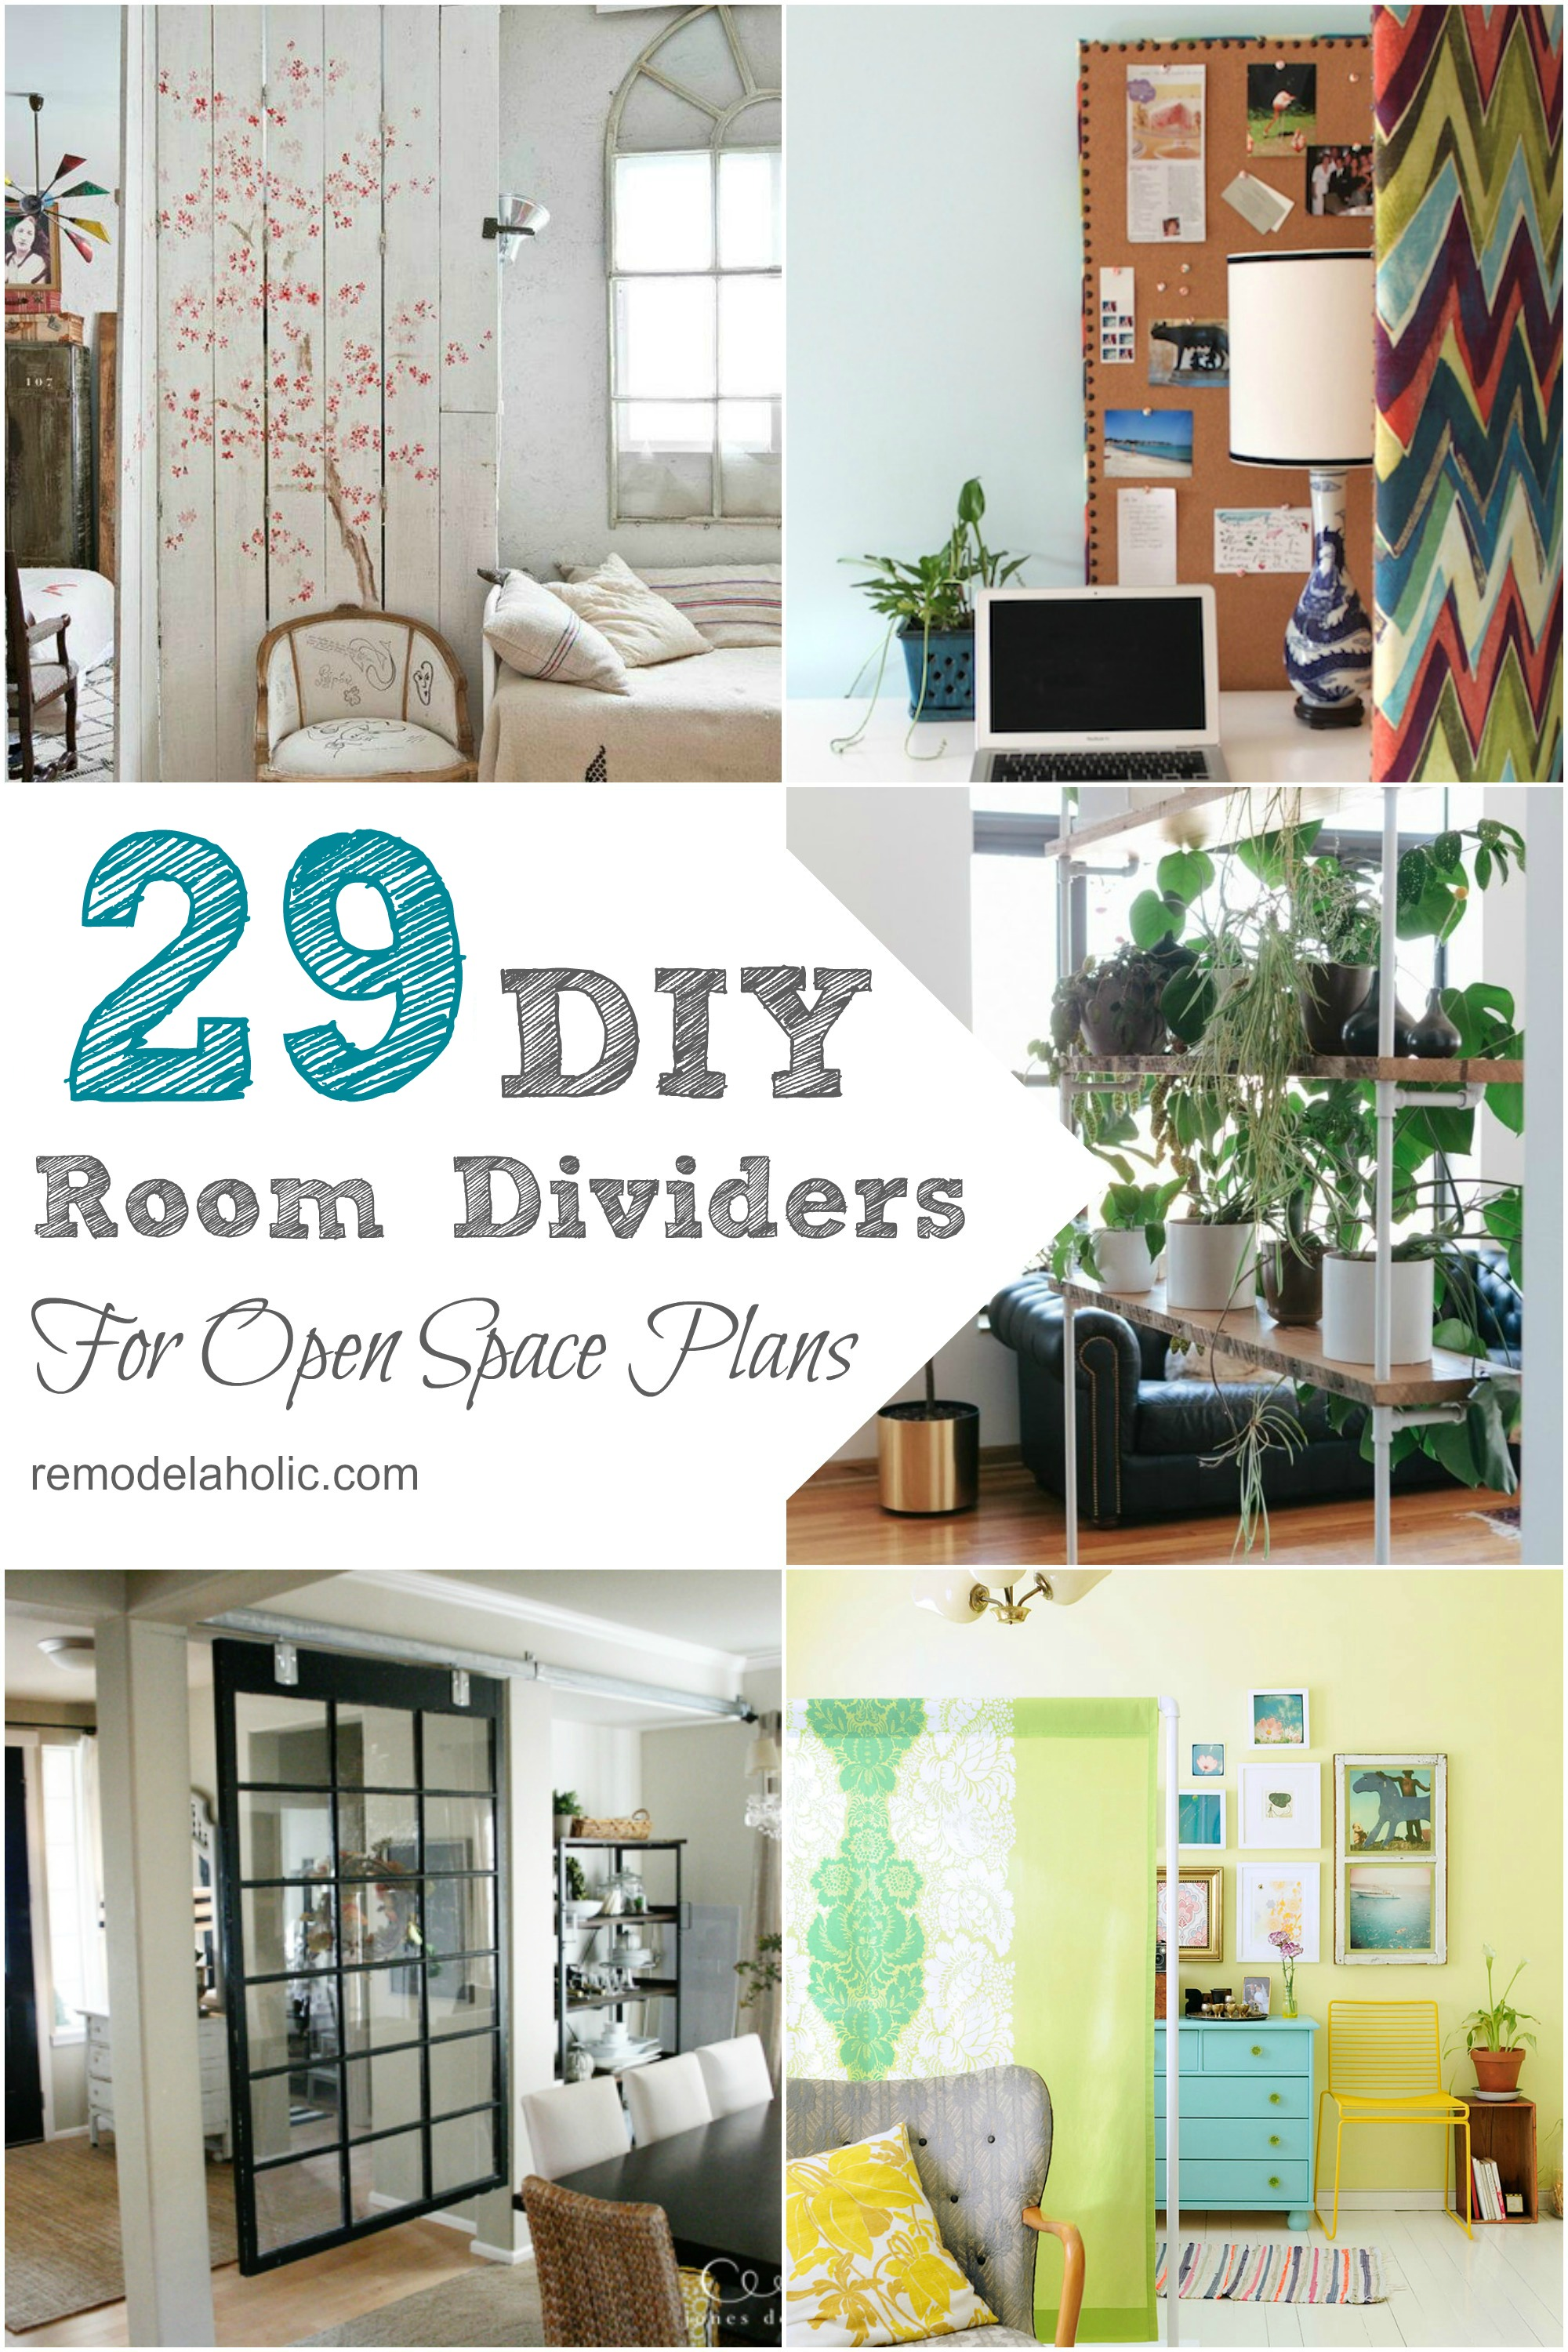 Remodelaholic 29 Creative Diy Room Dividers For Open Space